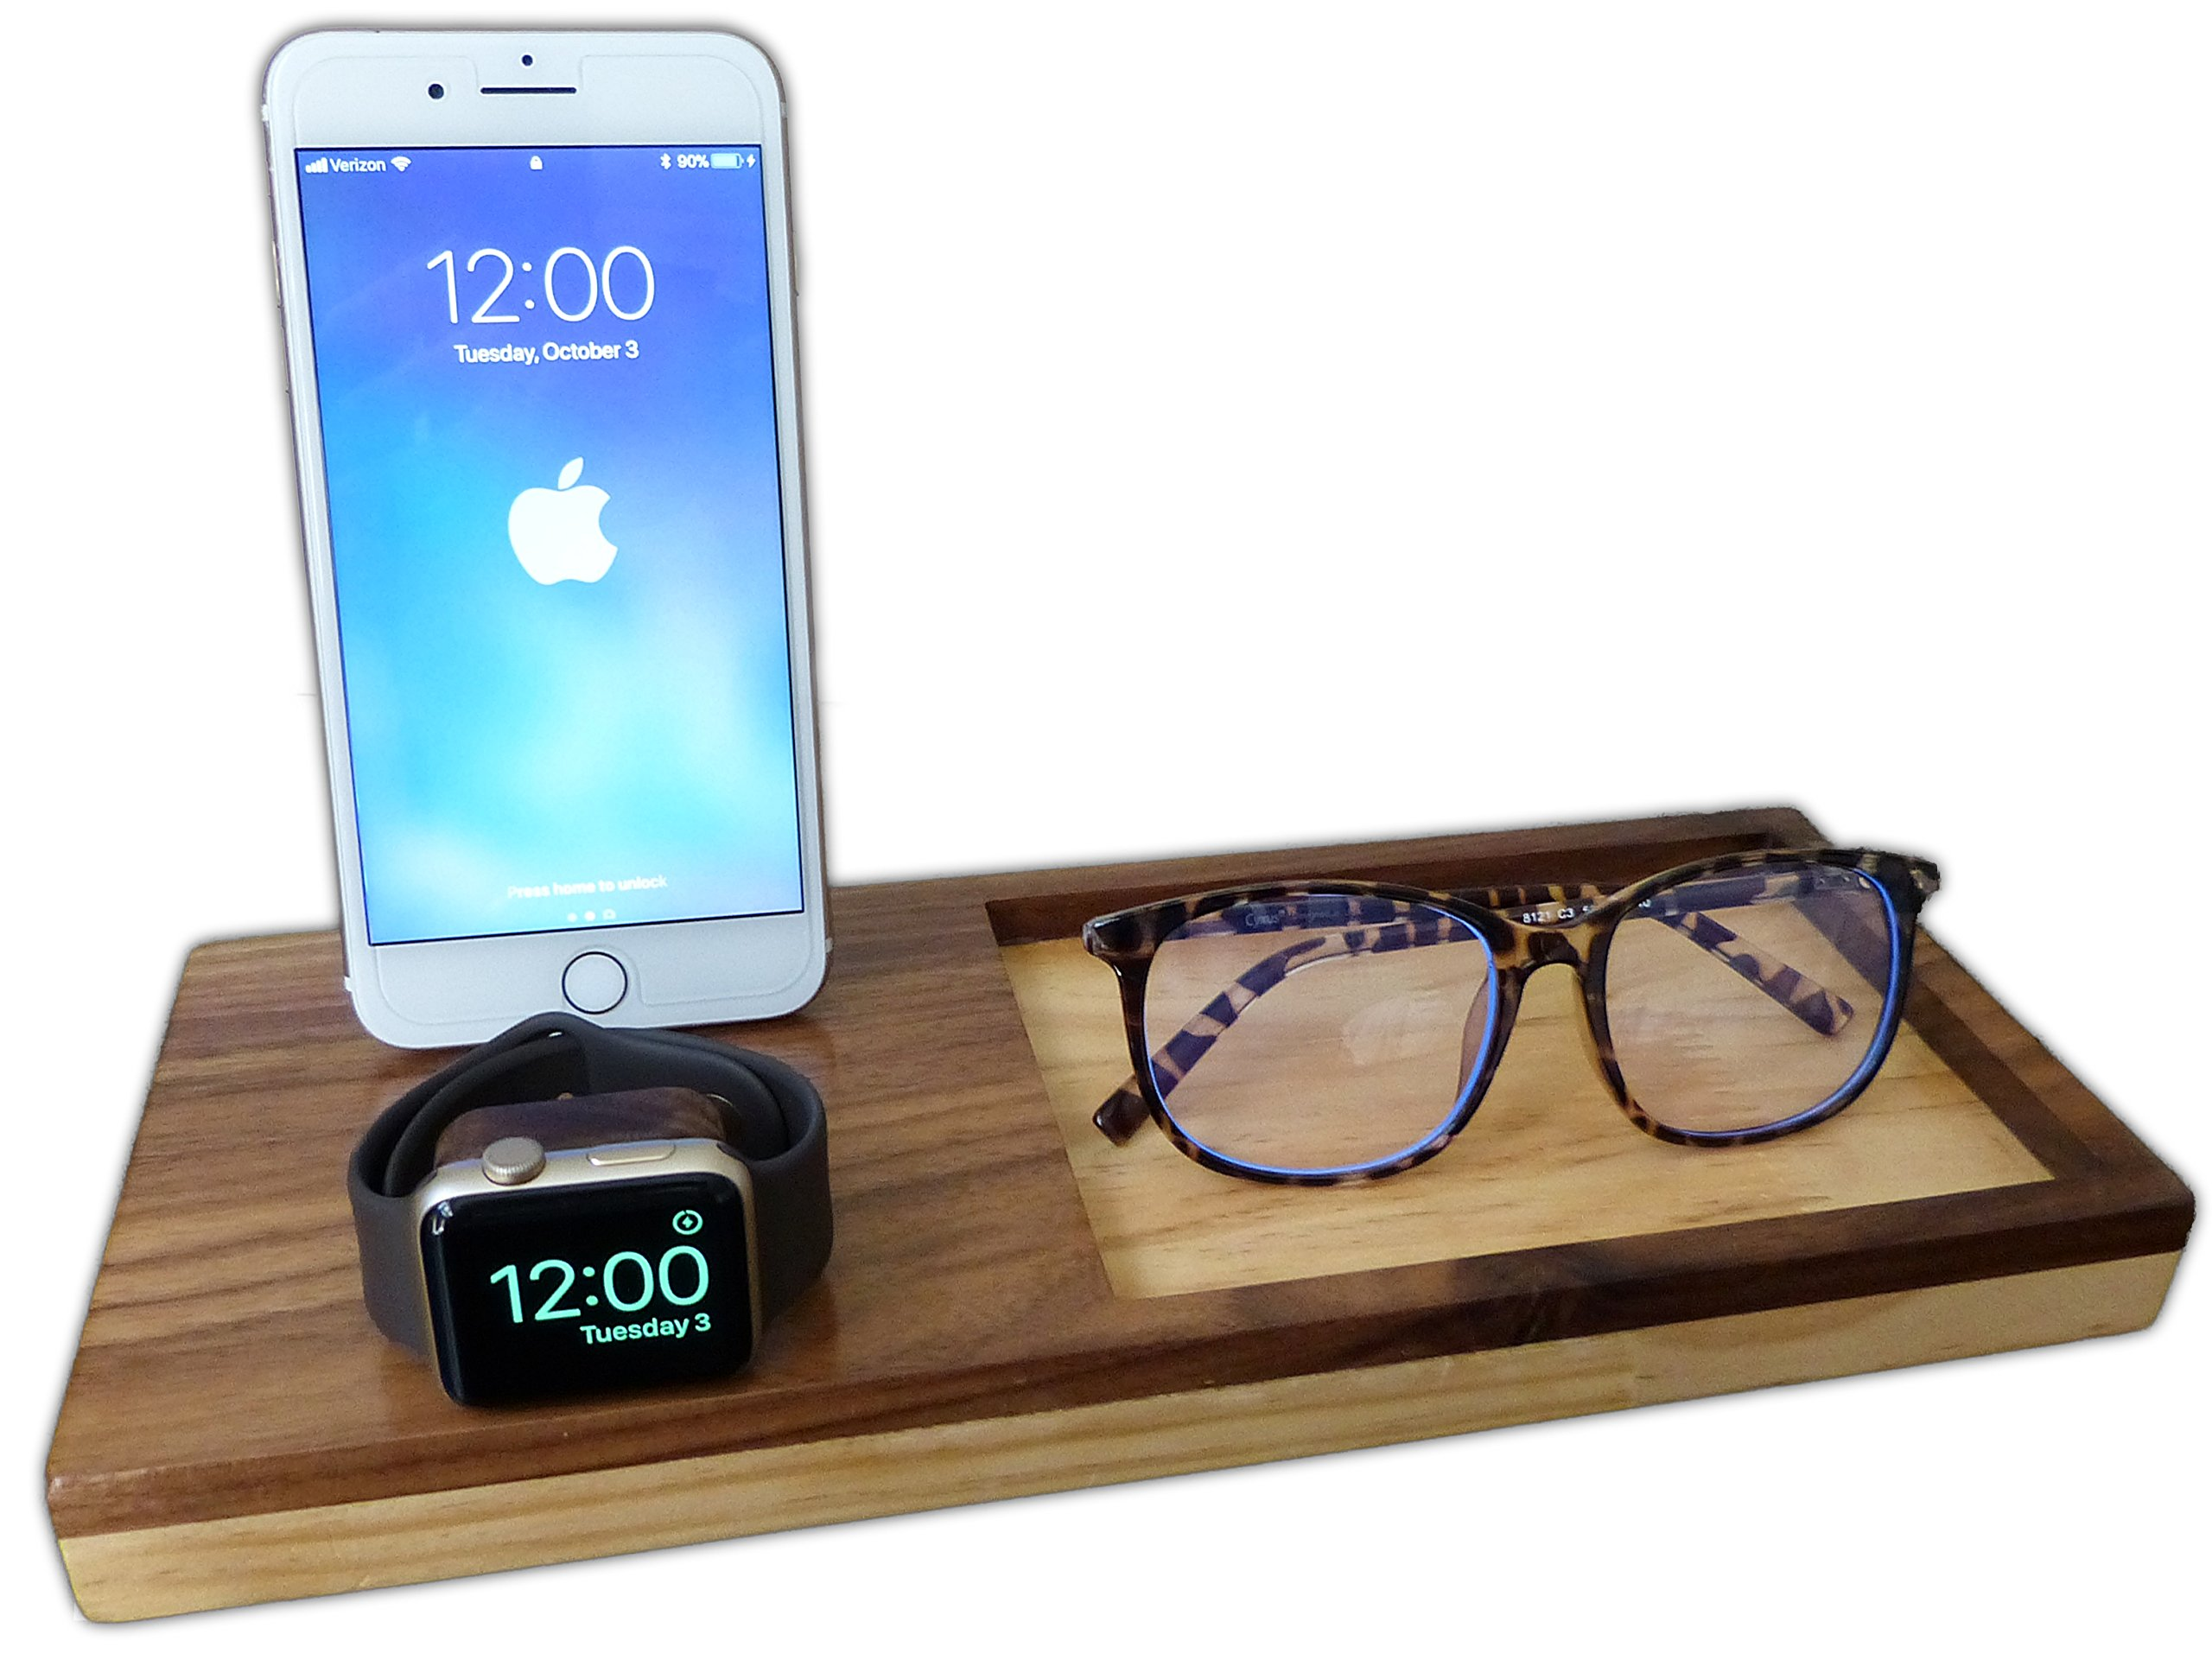 Wooden Charging Station Dock for iPhone and Apple Watch, Fullcharg iPhone Stand & Tray